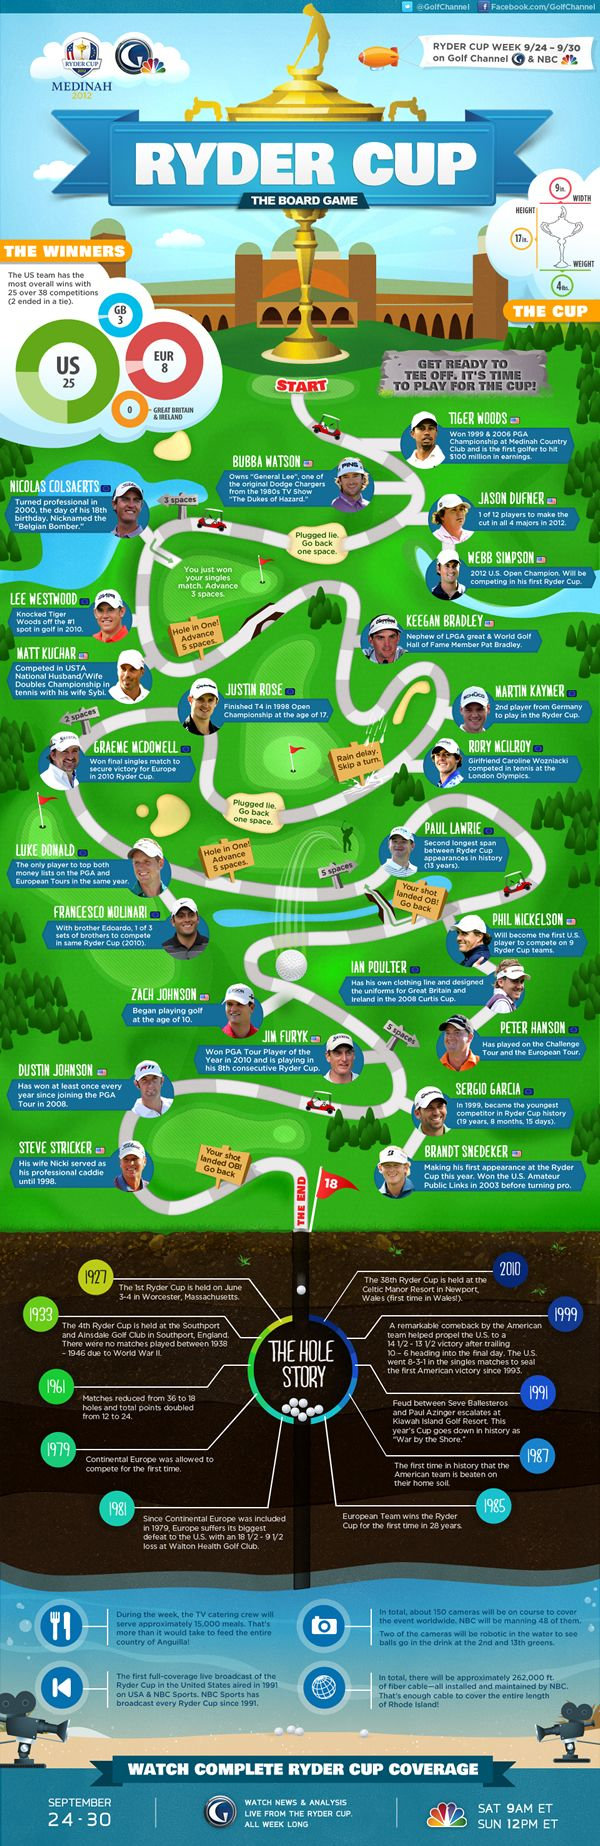 """Ryder Cup Infographic - 39th Ryder Cup board game  Seriously, there was a time when I'd have thought golf was a 'bored' game, but, as you reach 21 (wife laughs, """"double it, love!""""), tastes change.  Sunday morning park football with a raging hangover or wait 'til you've chased the daemon away and take a leisurely nine holes around the 3 Hammers?  Enough waffle - pin this posterette to board for a virtual tour of the 2012 Ryder Cup in Medinah  darrelldoo4golf #rydercup…"""